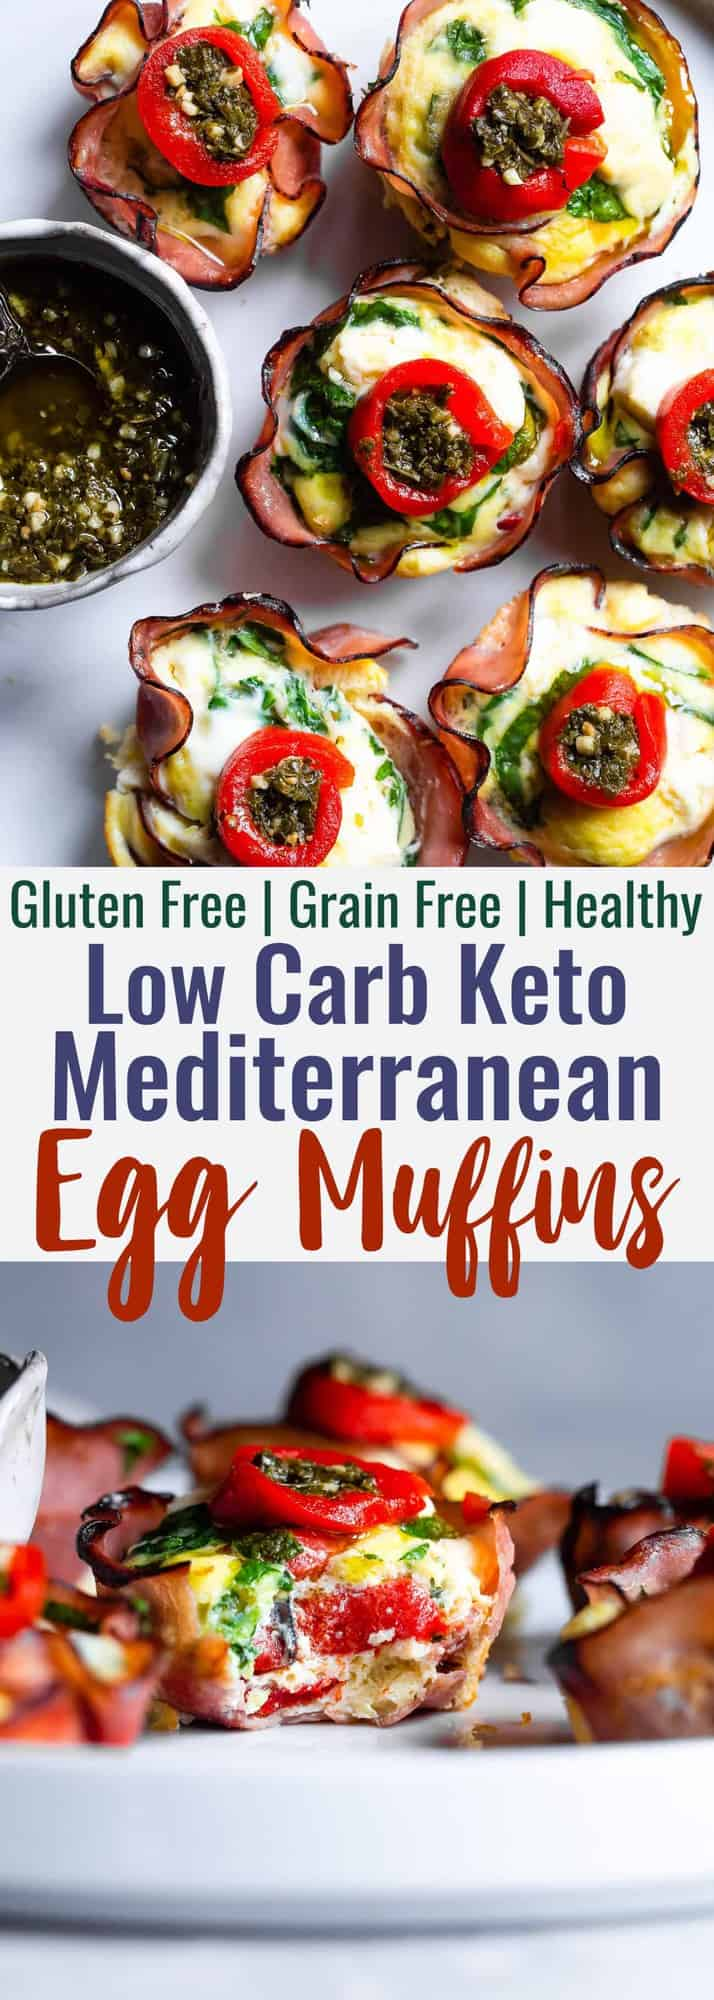 Mediterranean Keto Low Carb Egg Muffins - These easy, healthy egg muffins have a little Mediterranean flair and are packed with protein! A portable, healthy and gluten free breakfast or snack that is keto friendly and low carb! | #Foodfaithfitness | #Glutenfree #Keto #Lowcarb #Breakfast #Healthy